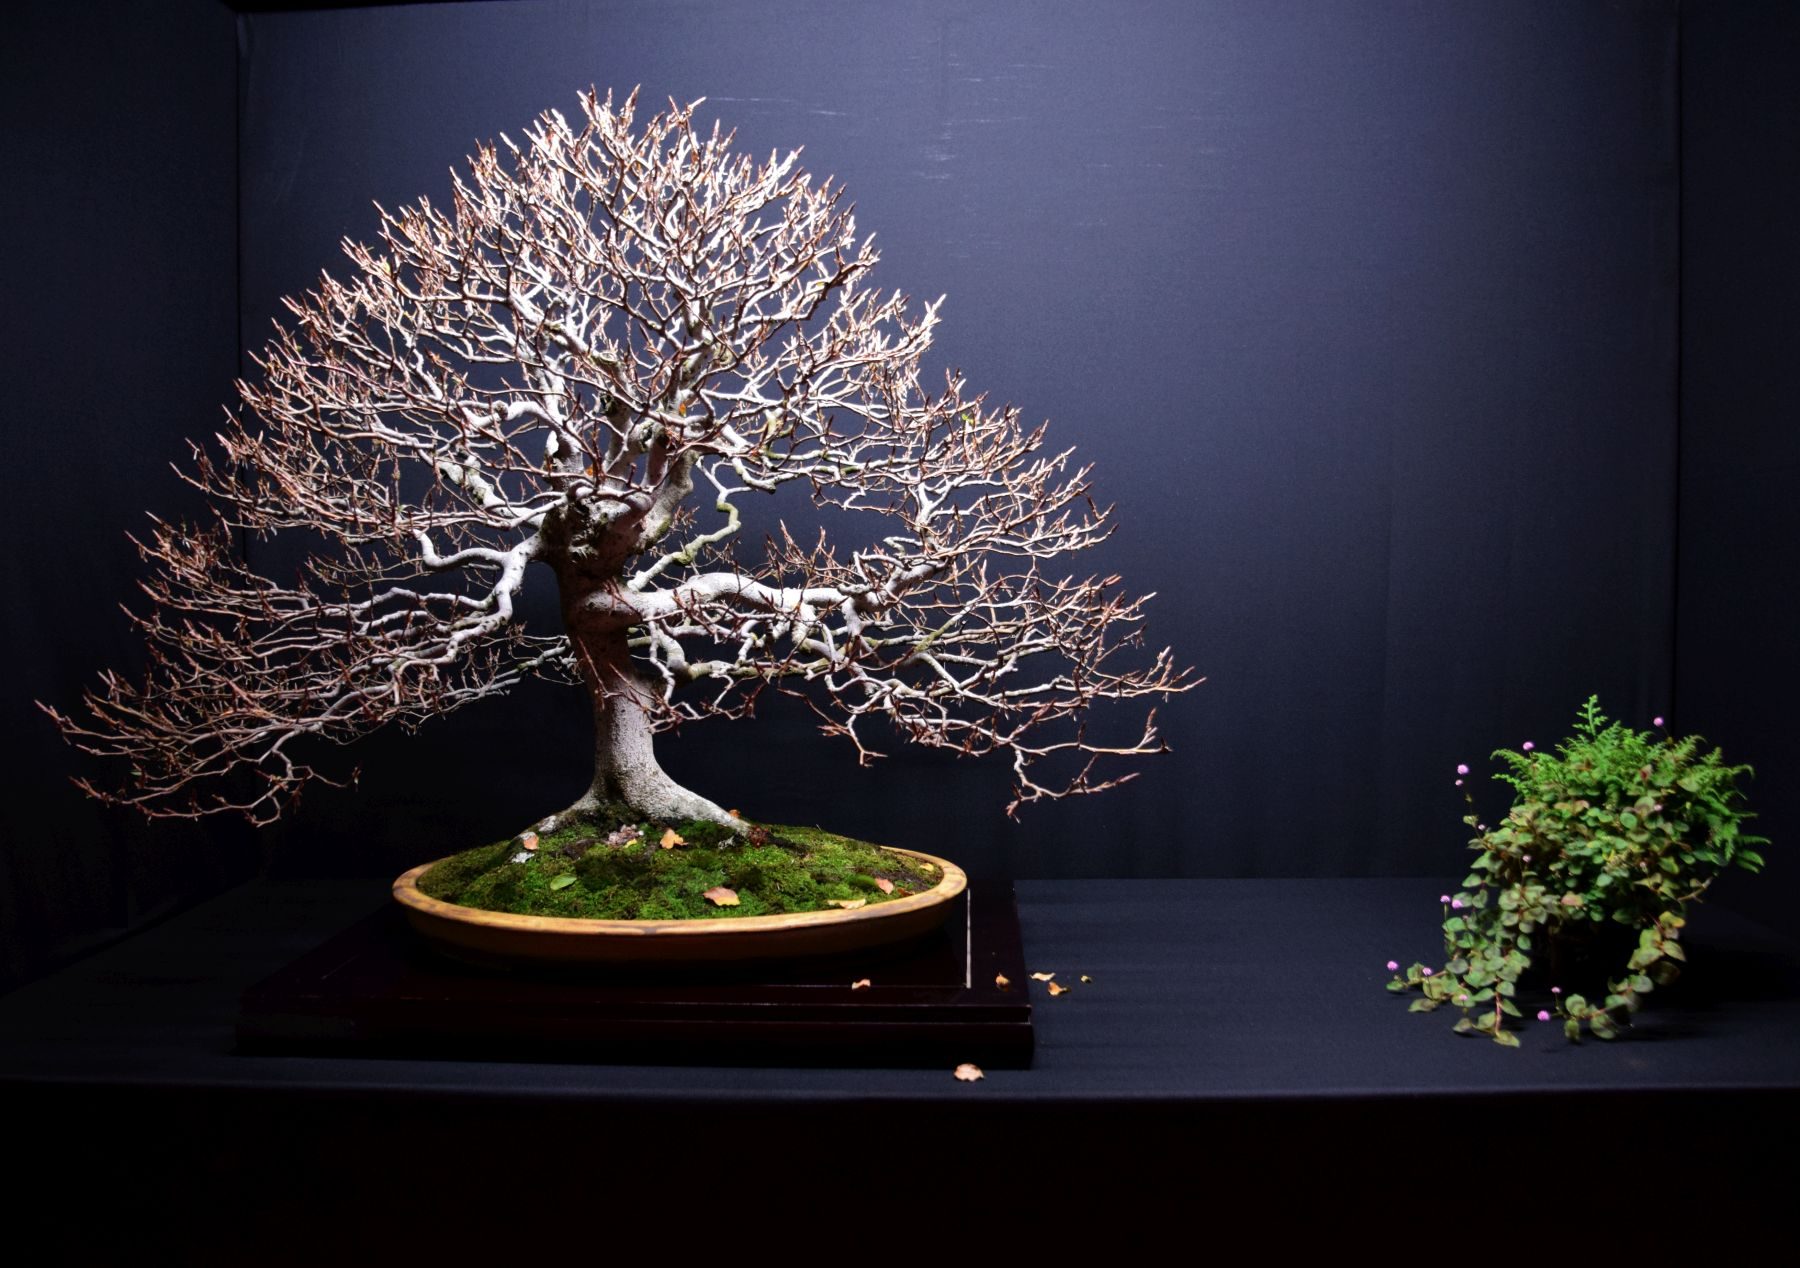 bonsai-museum-luis-vallejo-020